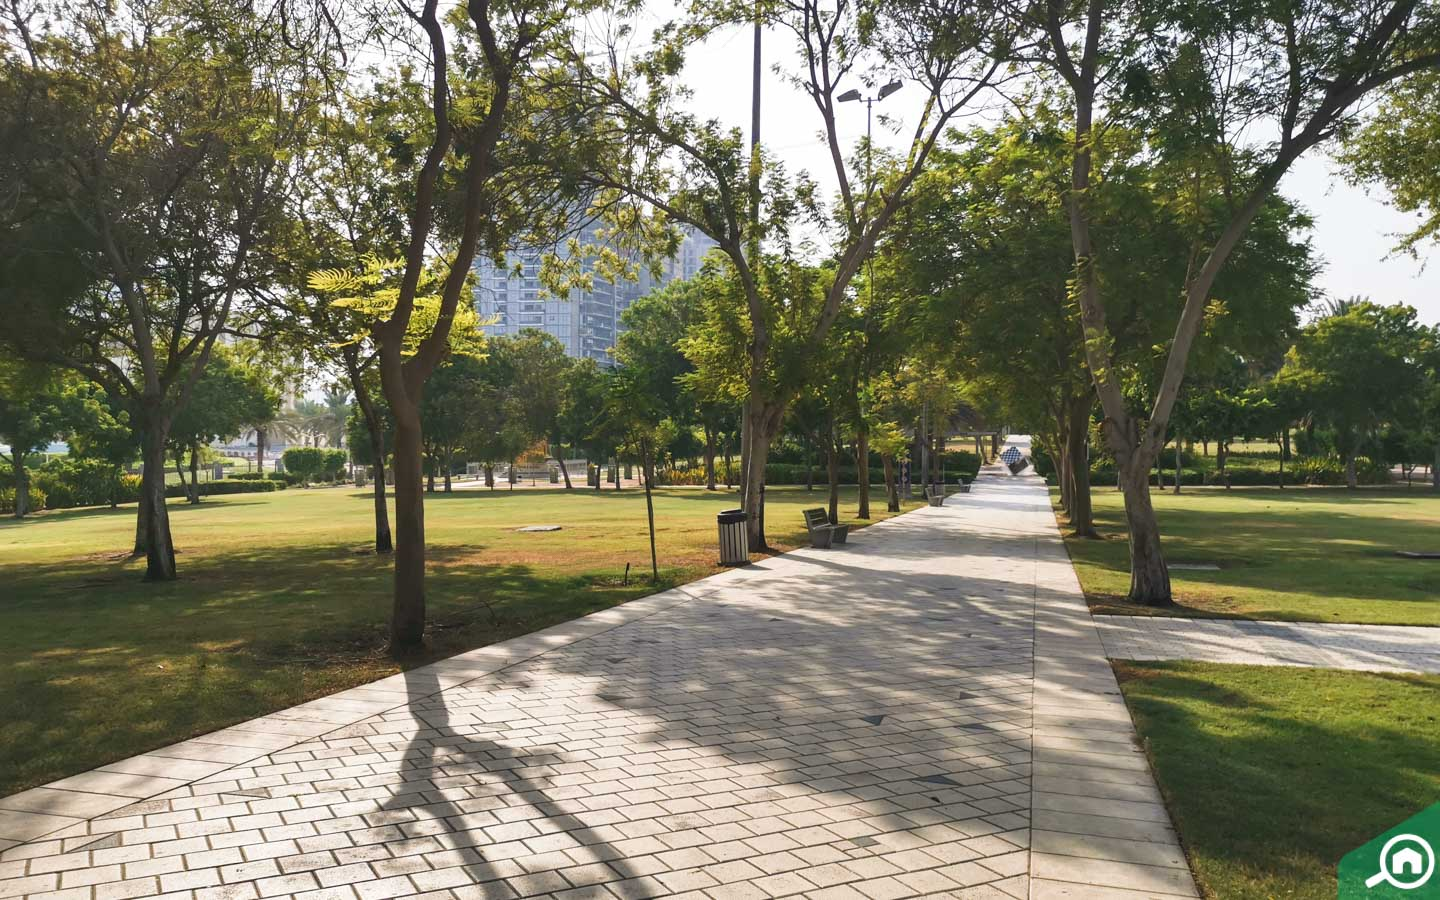 Green pathways at Zabeel park